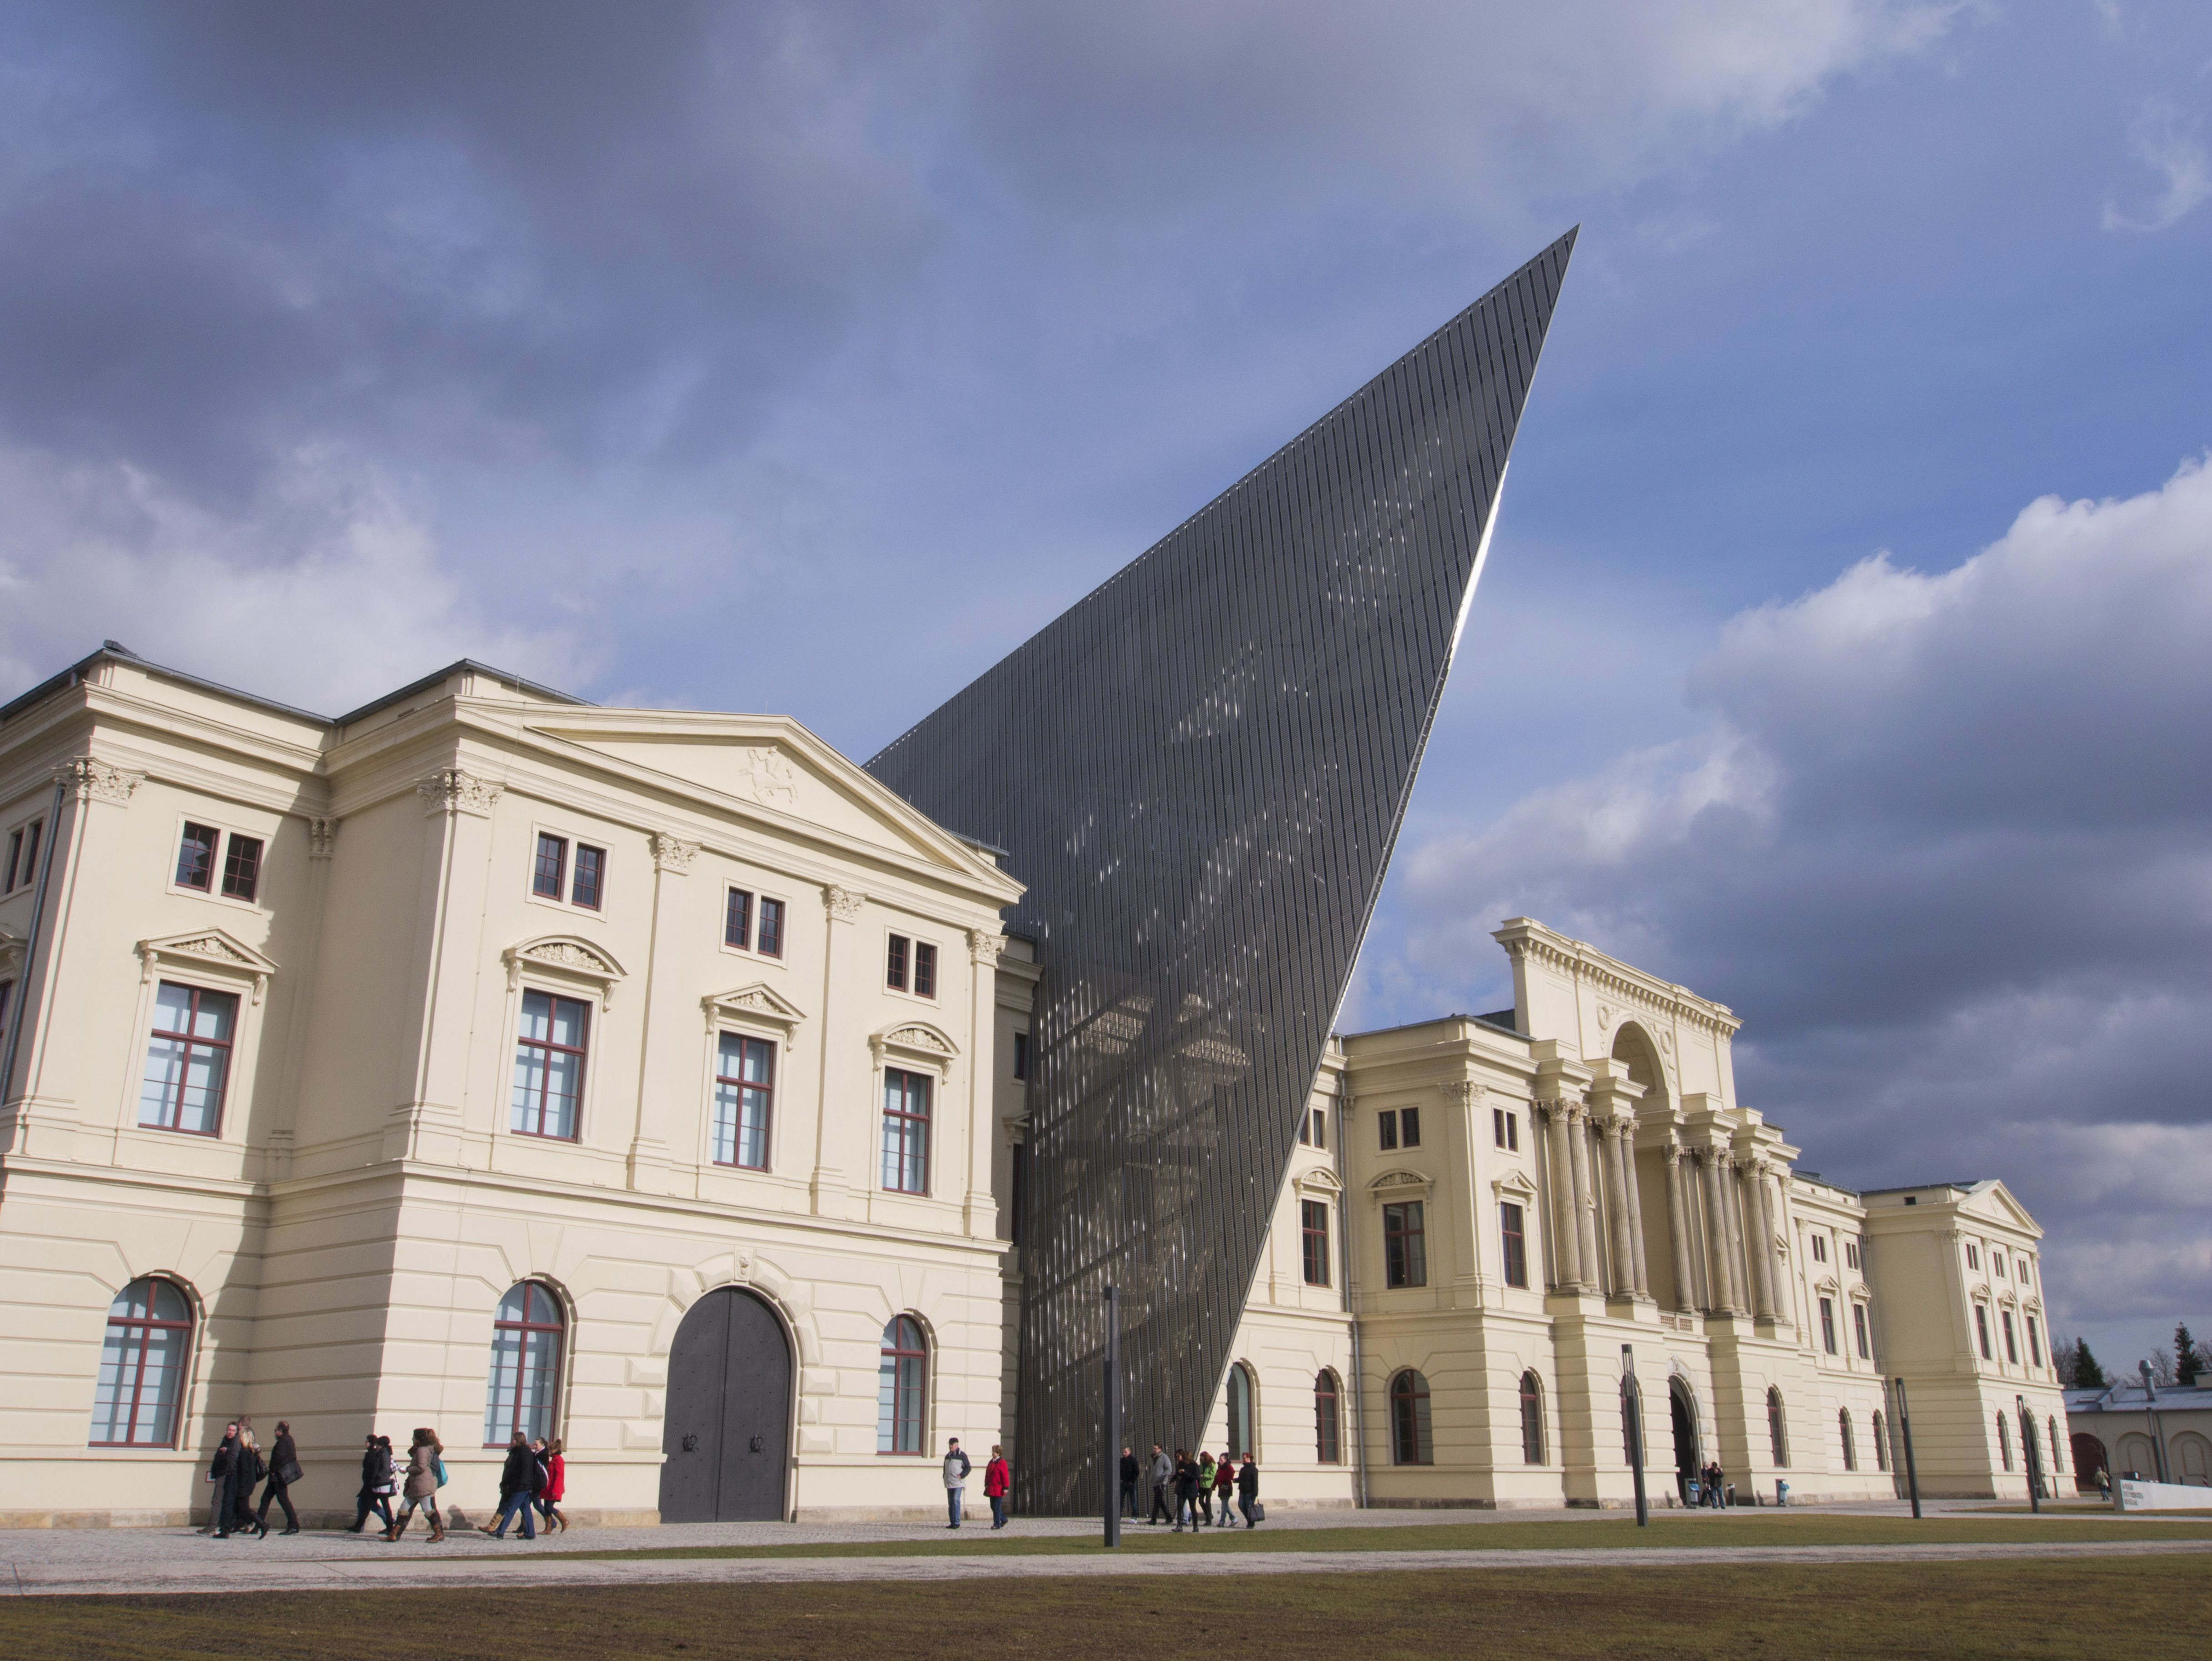 Top Ten Things To Do In Dresden